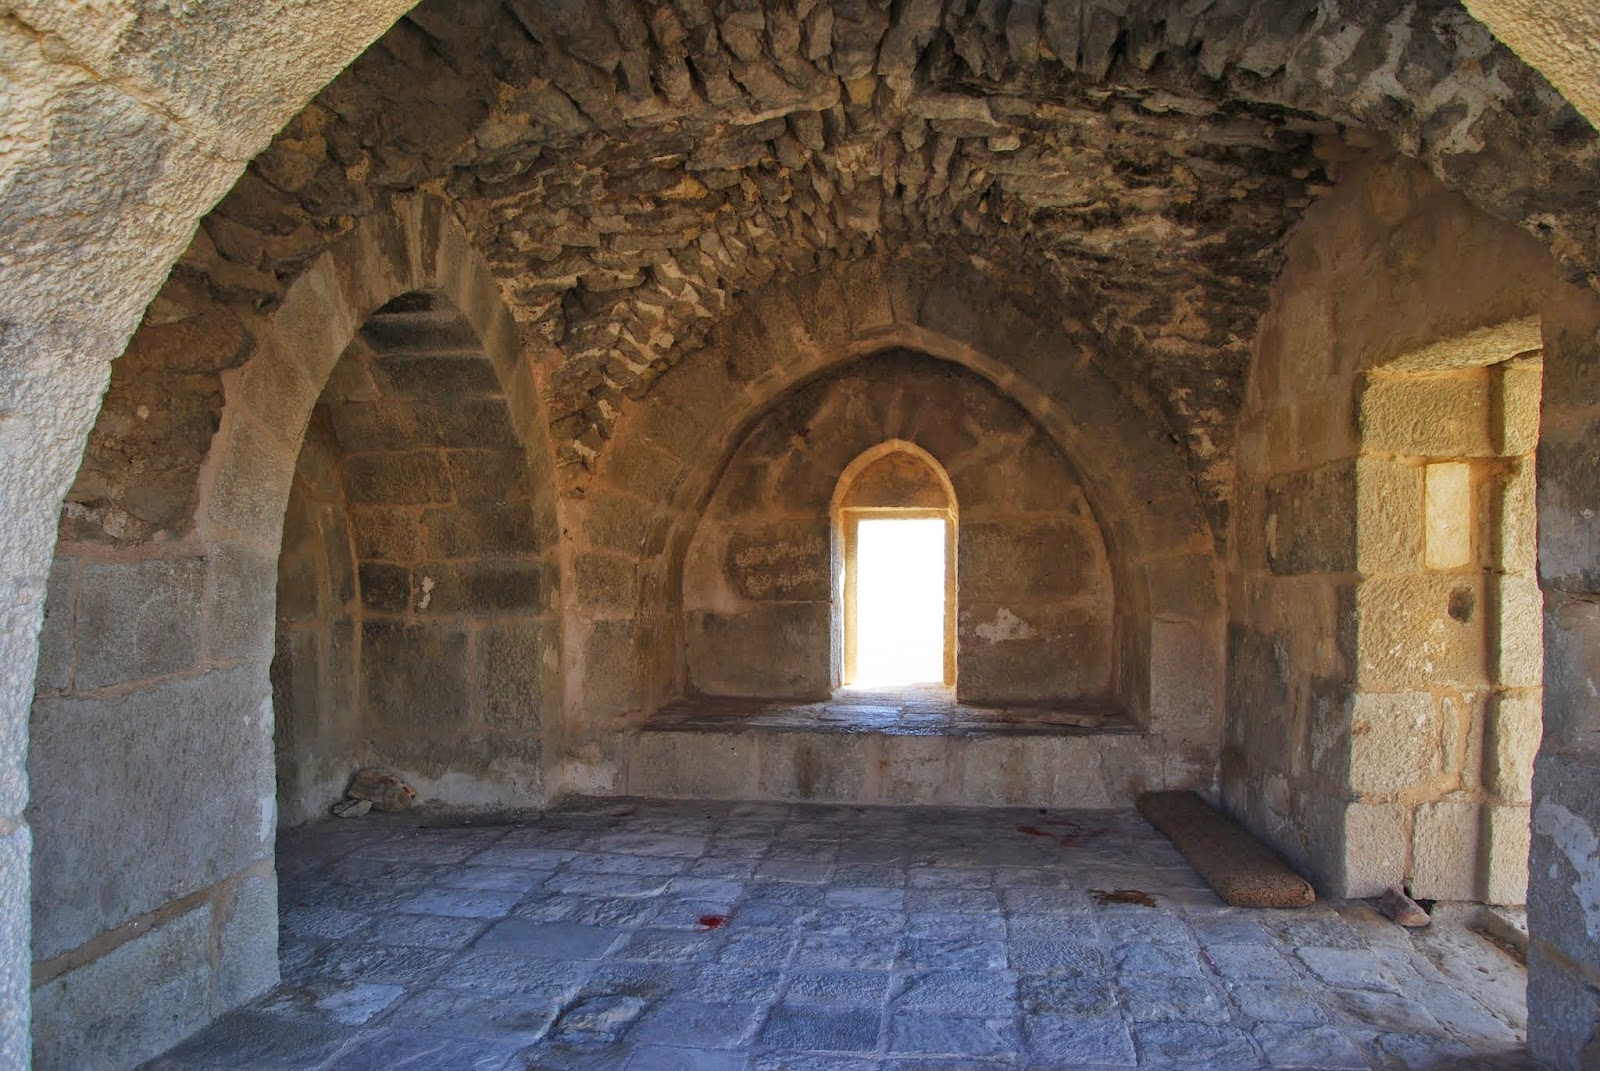 My Photos: Jordan -- Shobak Crusader Castle